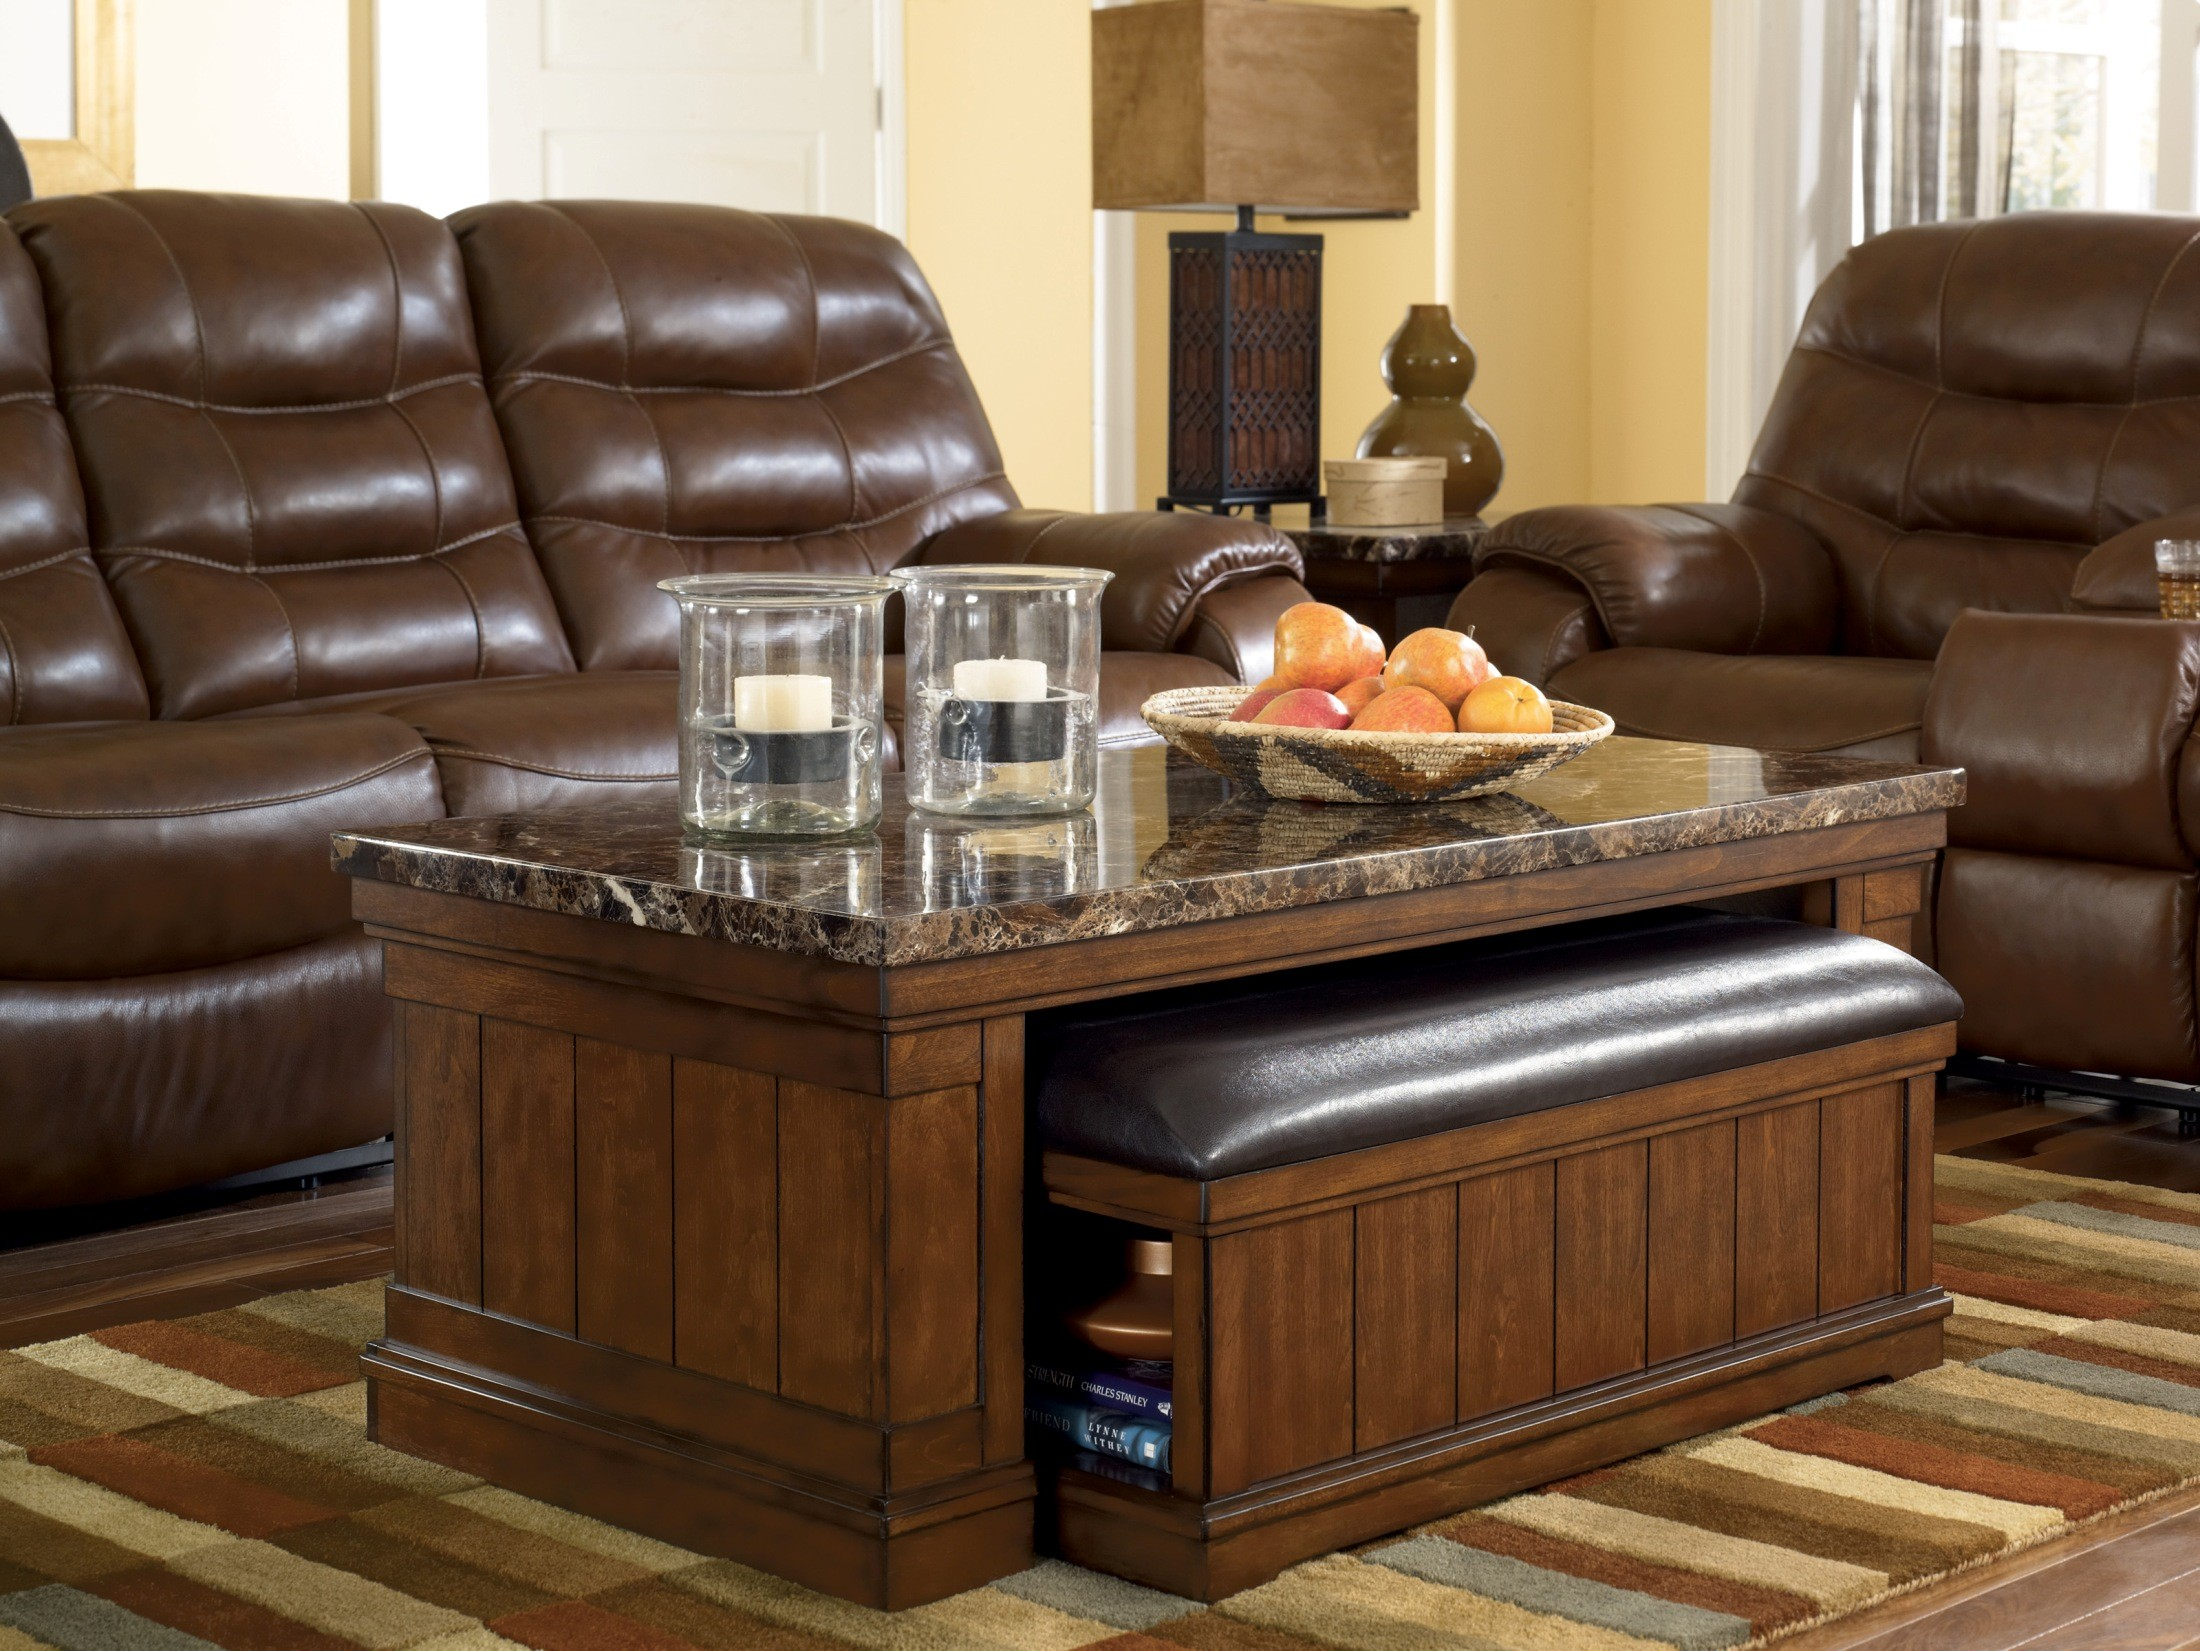 Merihill Cocktail Table With Ottoman 2 Piece Set From